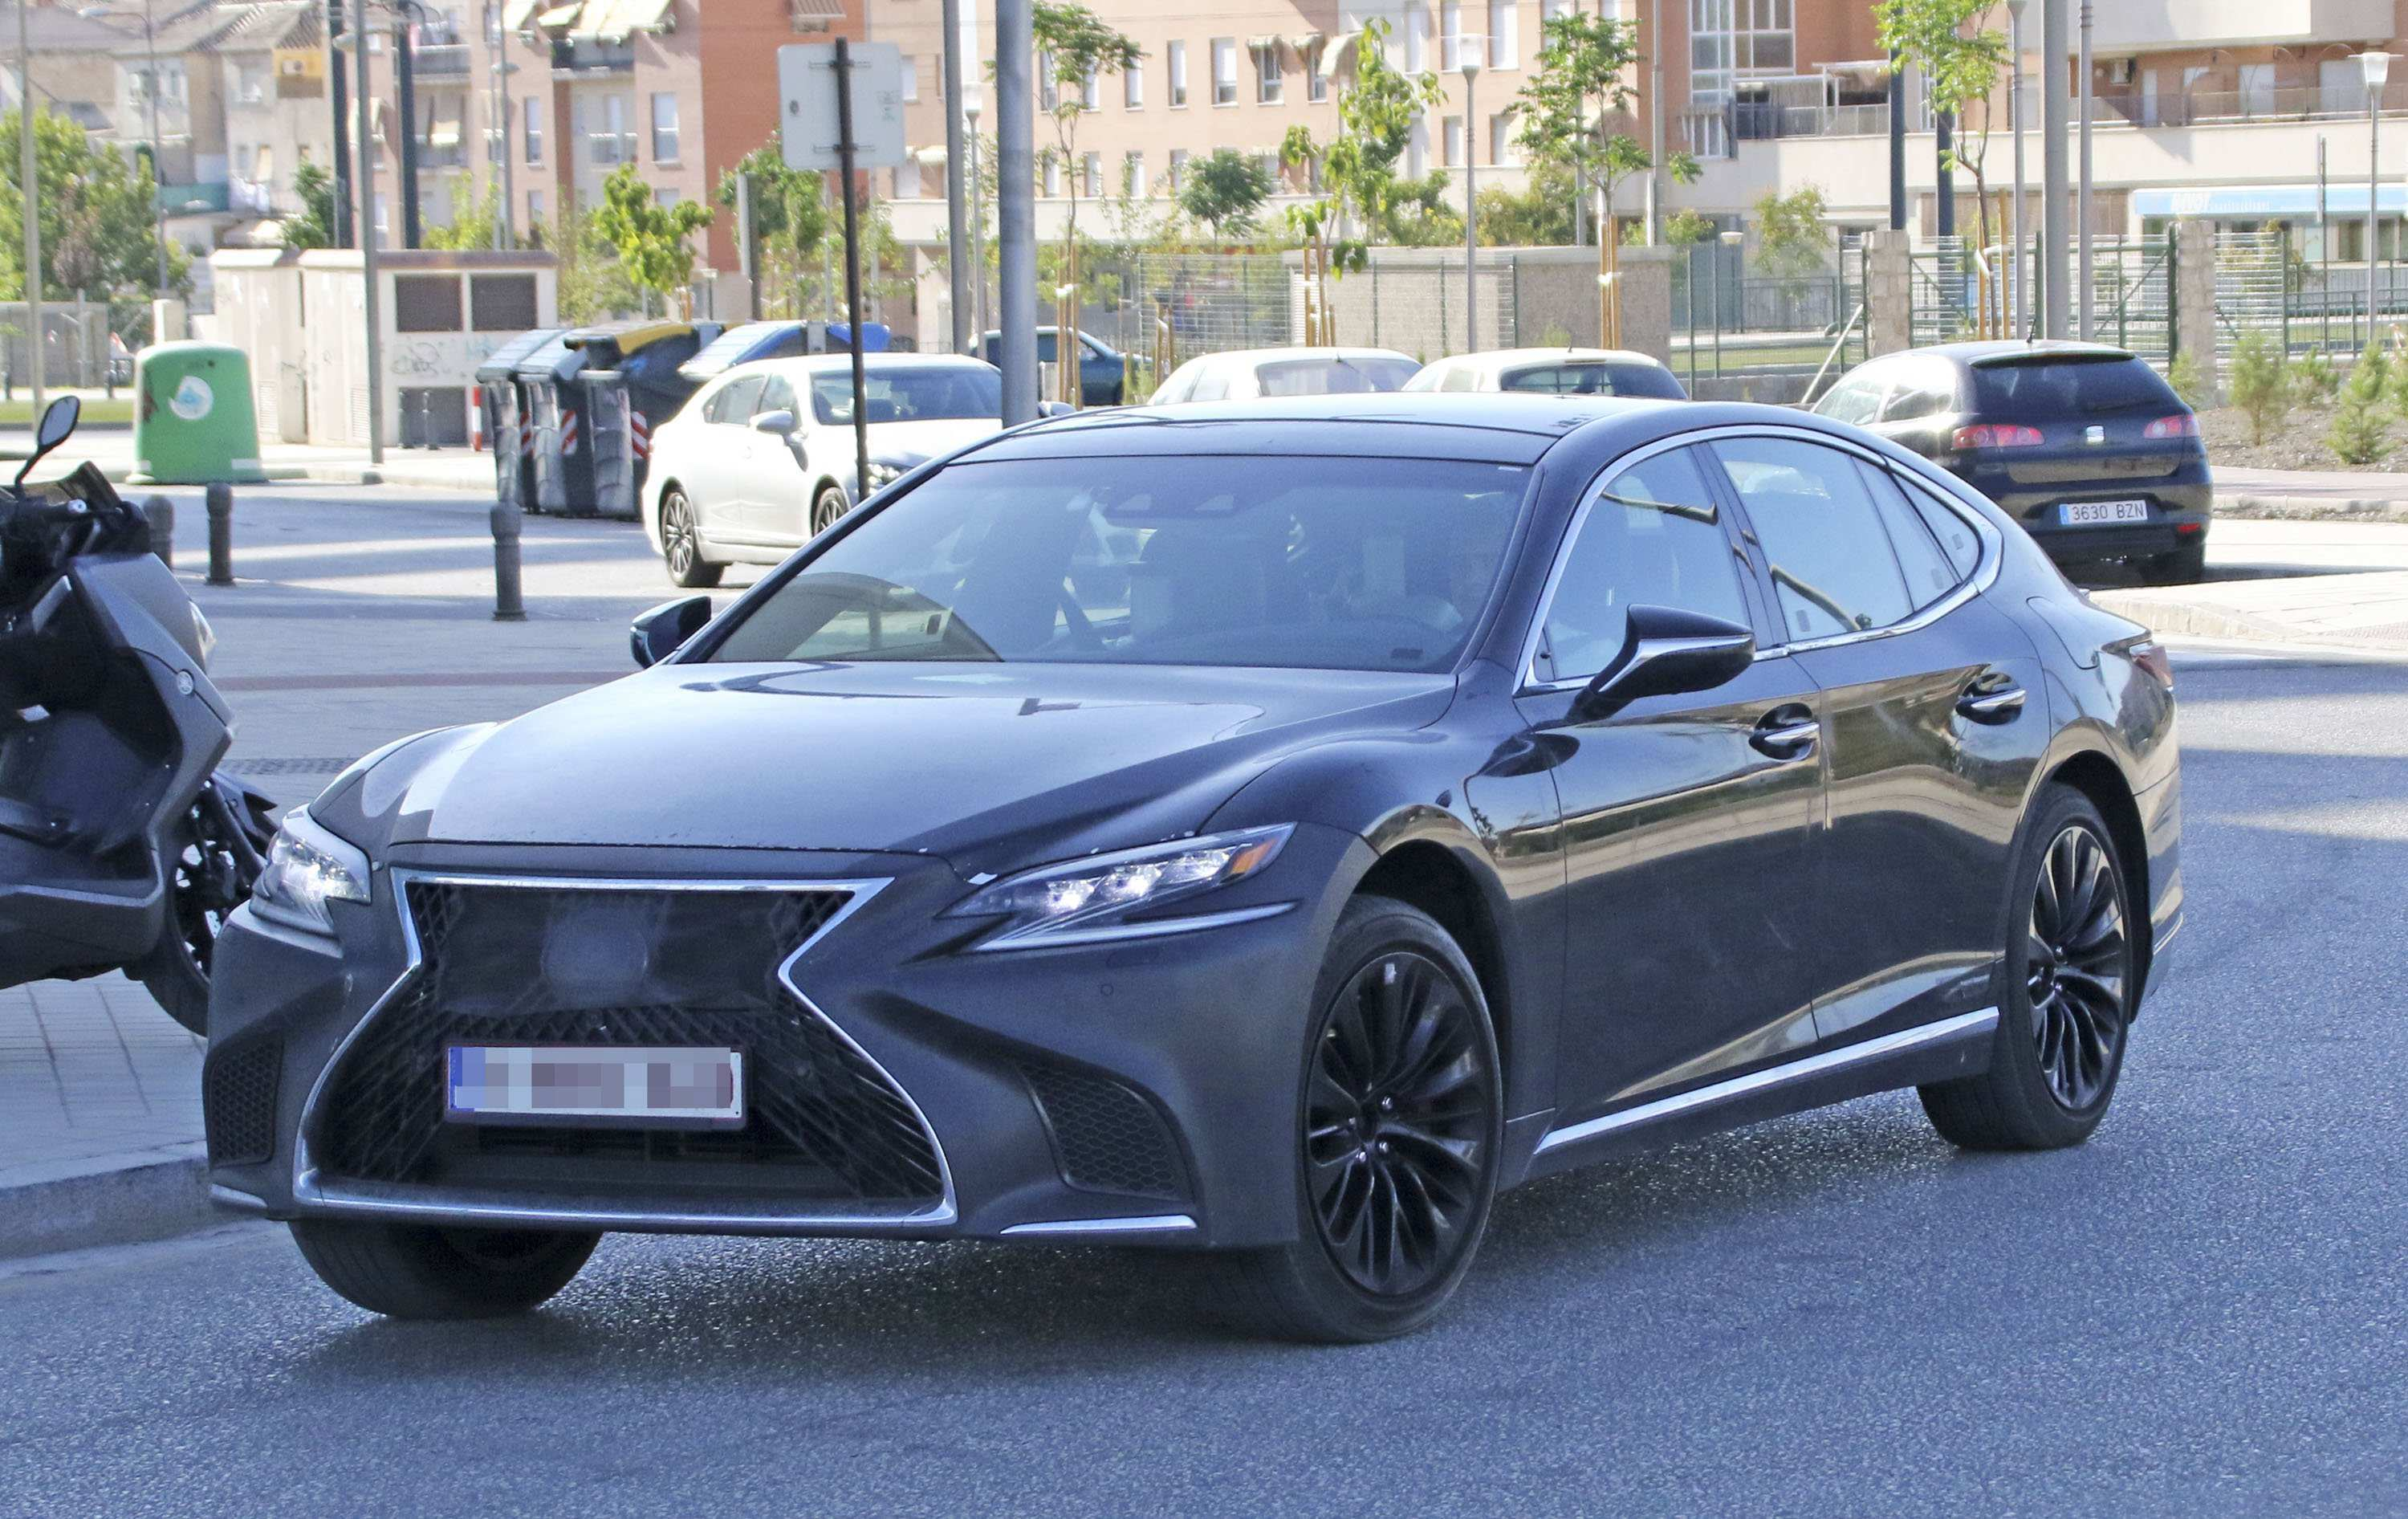 13 New 2019 Lexus Ls Price and Review by 2019 Lexus Ls